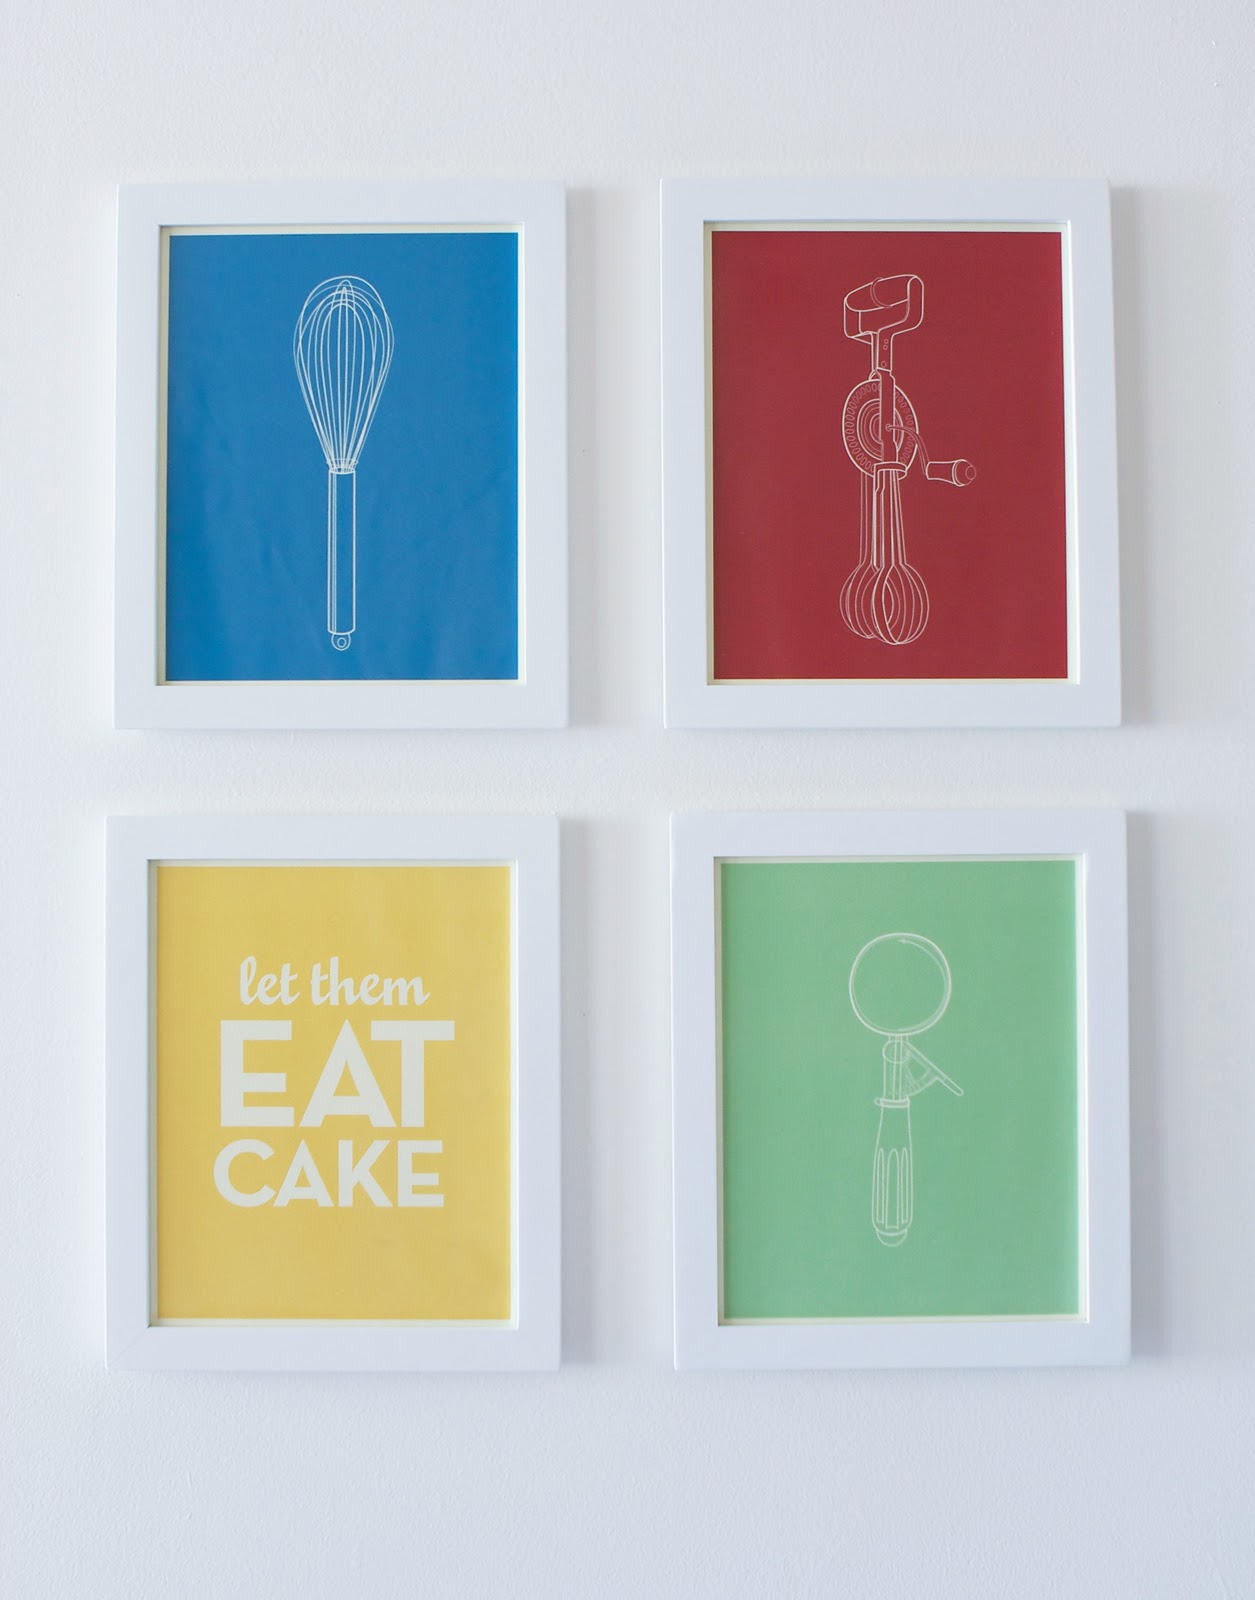 Mini Posters Of The Kitchen Series. The More The Merrier, Right?